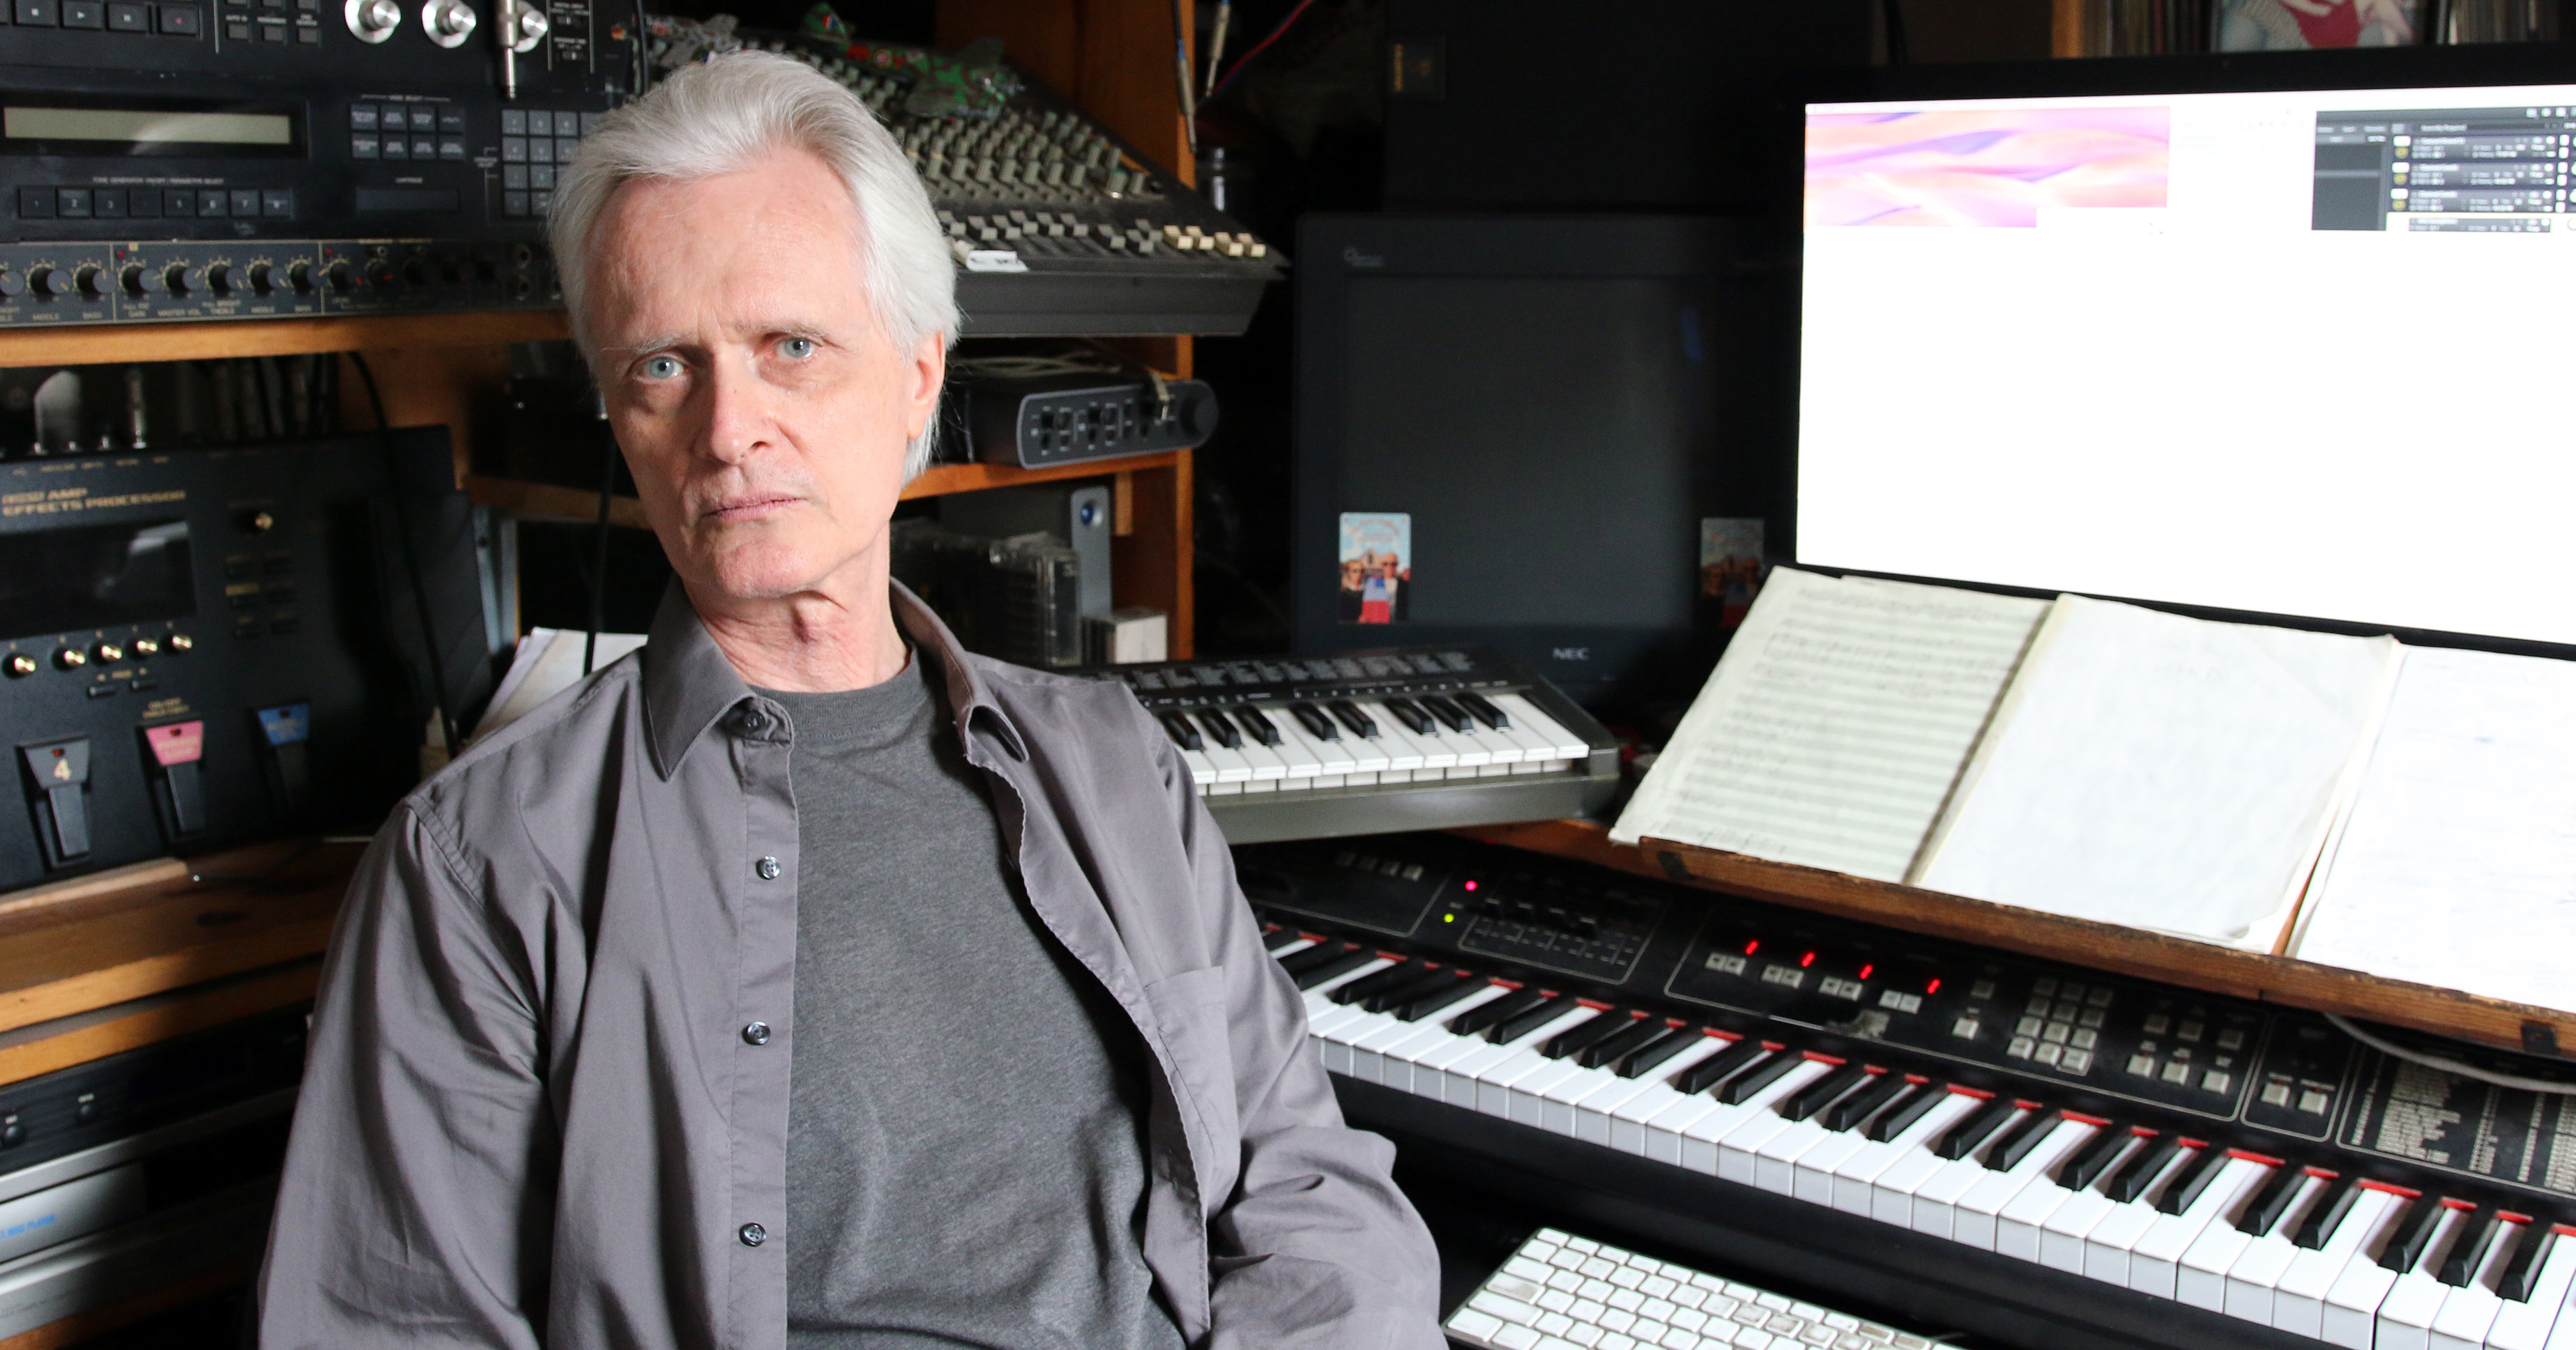 Scott Johnson in front of his work station with various electronic keyboards.